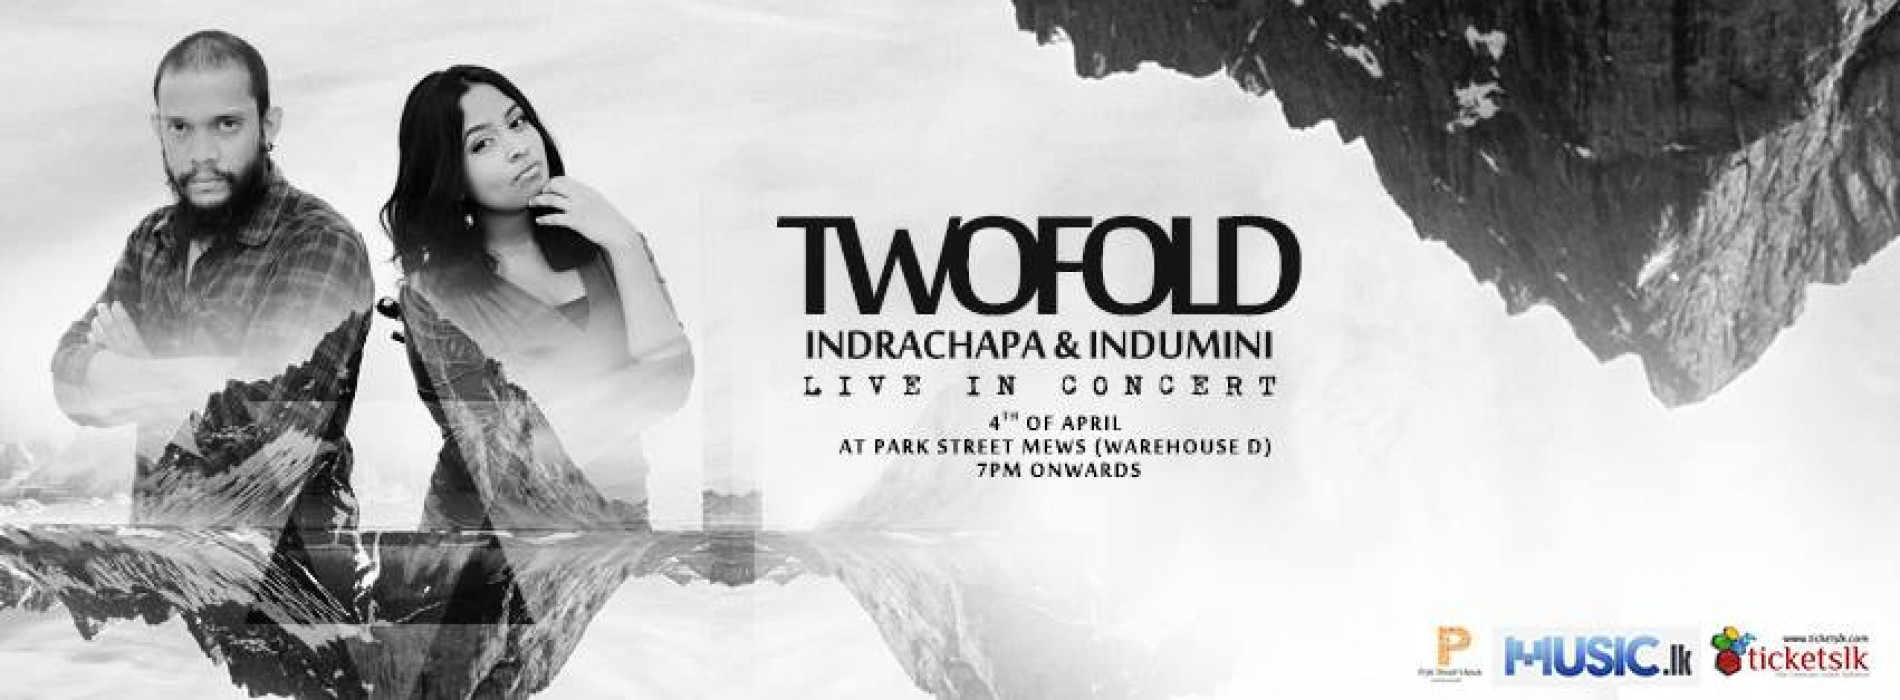 """"""" TWOFOLD """" Indrachapa & Indumini Live In Concert"""